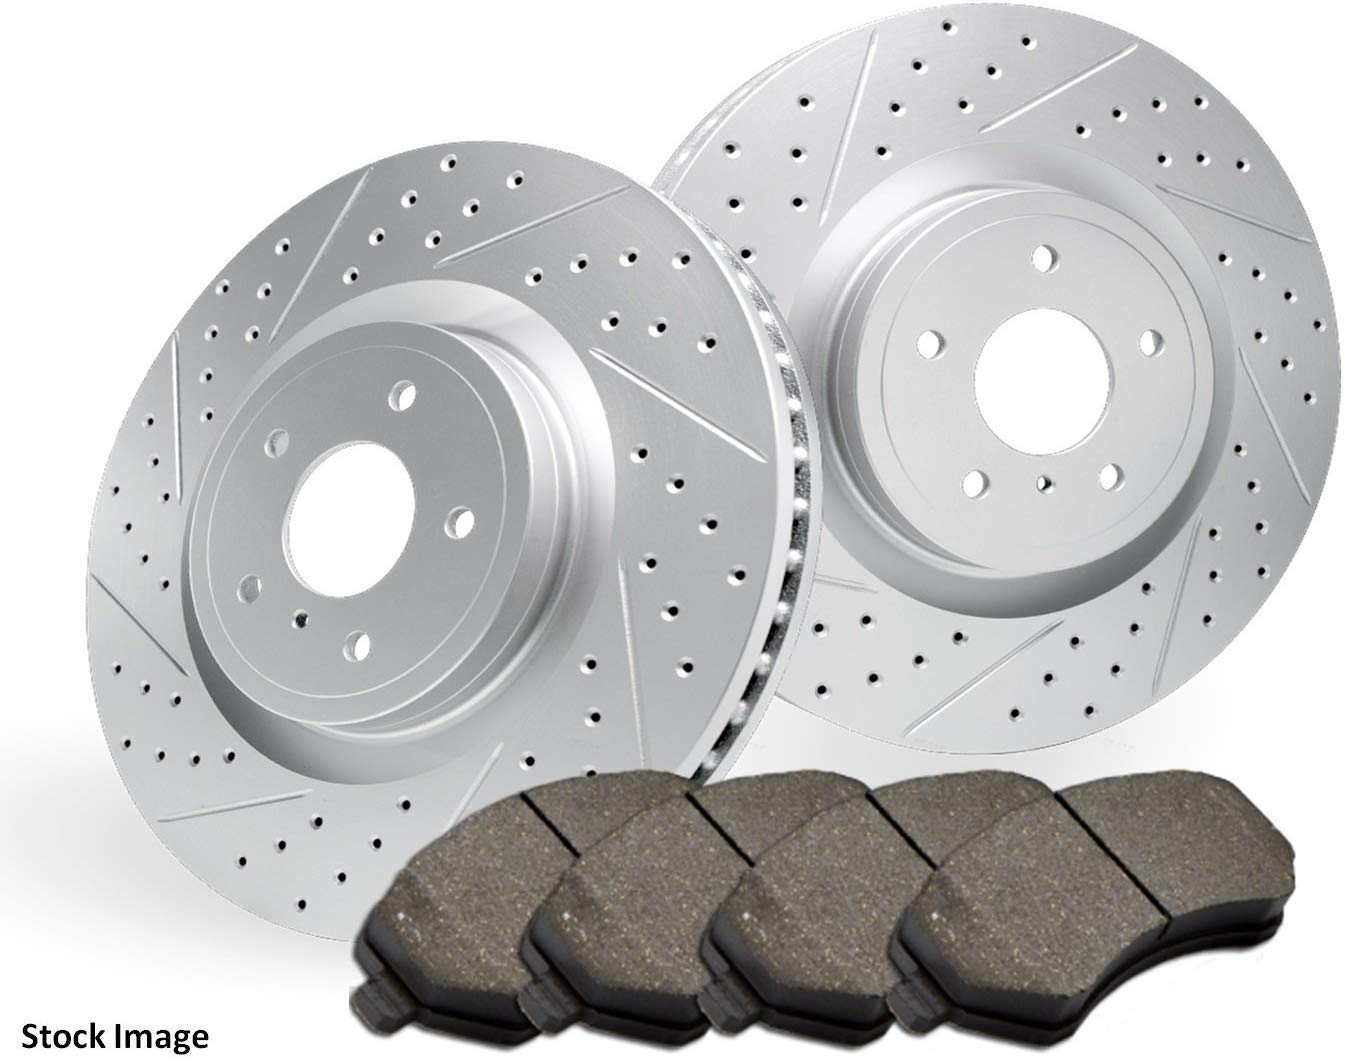 5.0 Engine Only 2015 for Land Rover Range Rover For Both Left and Right Rear Premium Quality Cross Drilled and Slotted Coated Disc Brake Rotors And Ceramic Brake Pads - One Year Warranty